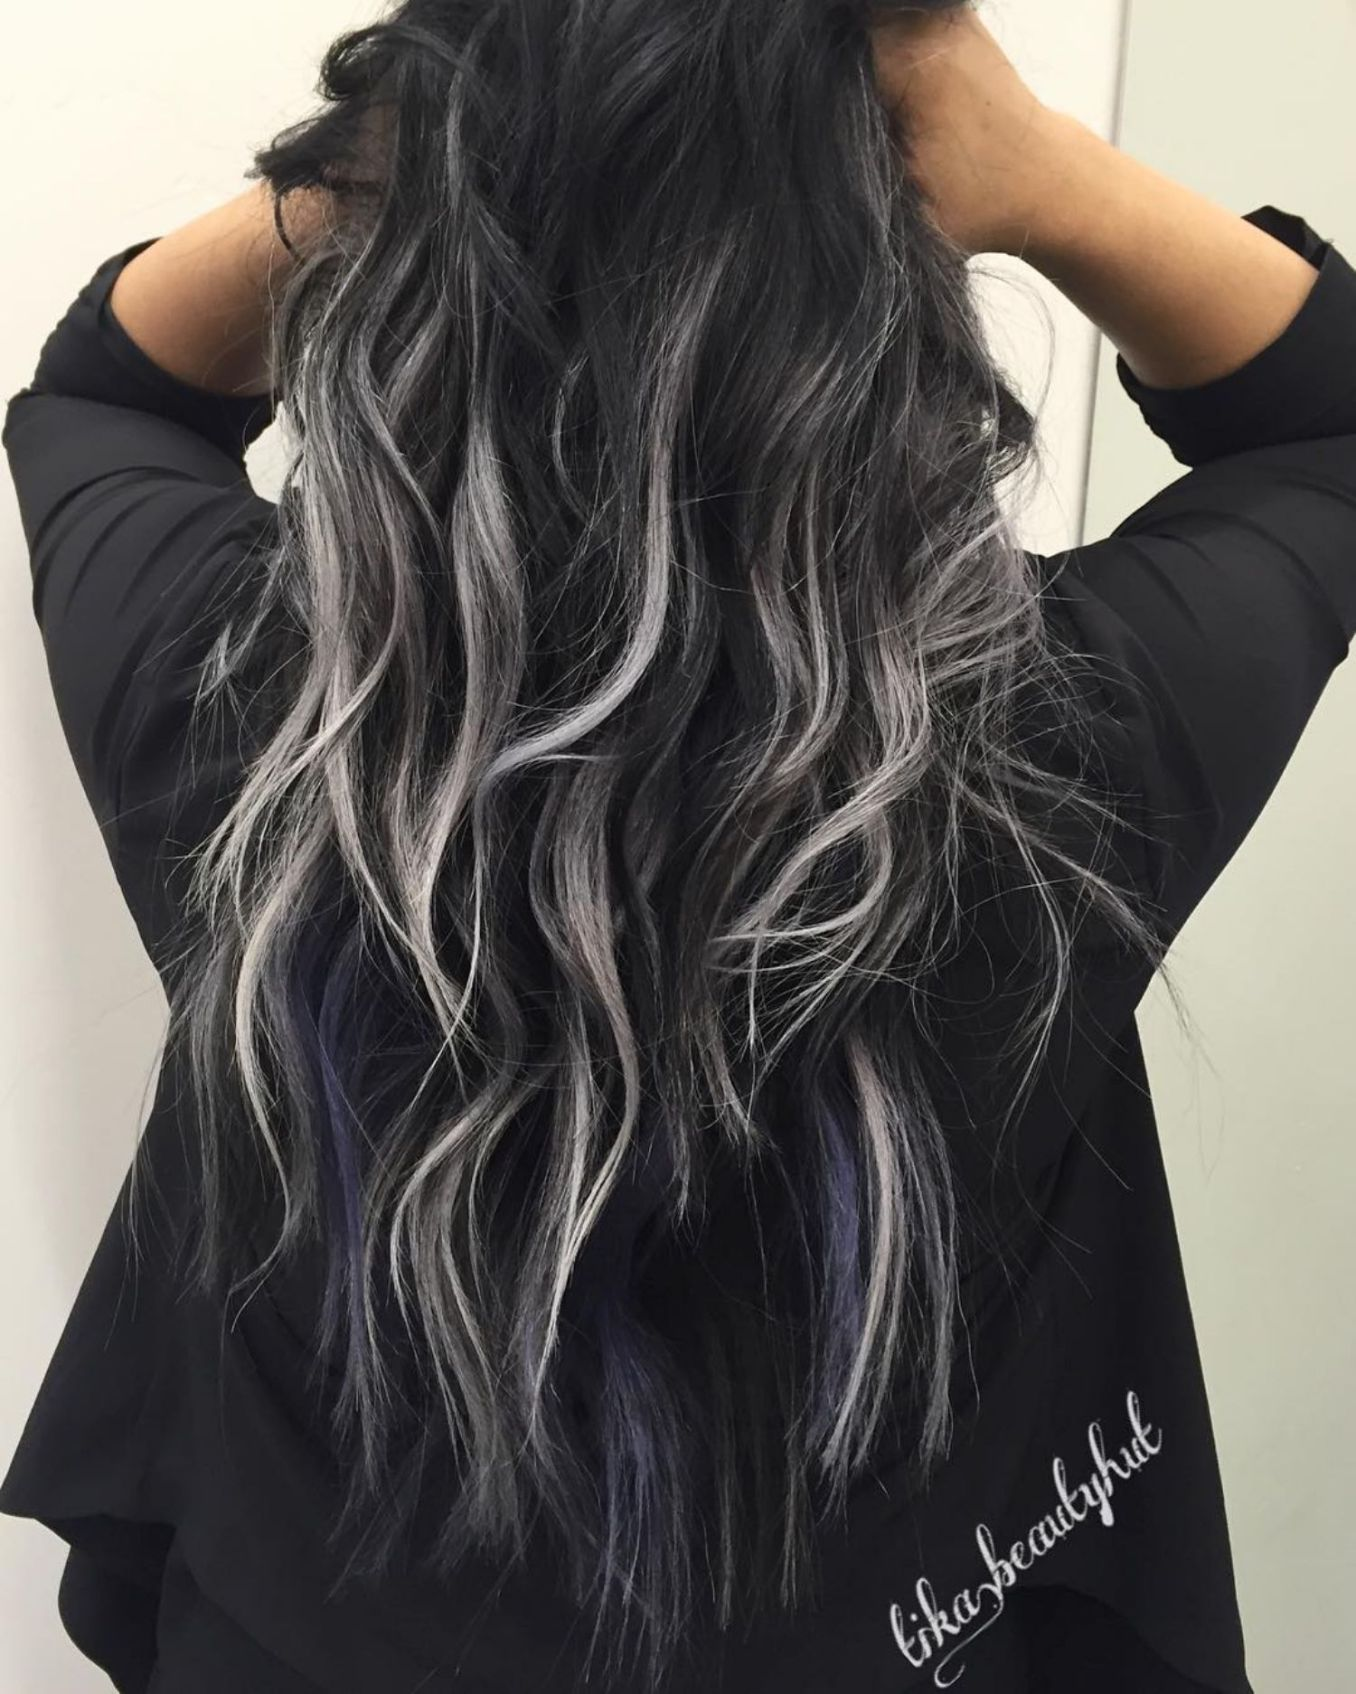 Muted Gray And Blue Highlights For Black Hair Grey Ombre Hair Hair Styles Curly Hair Styles